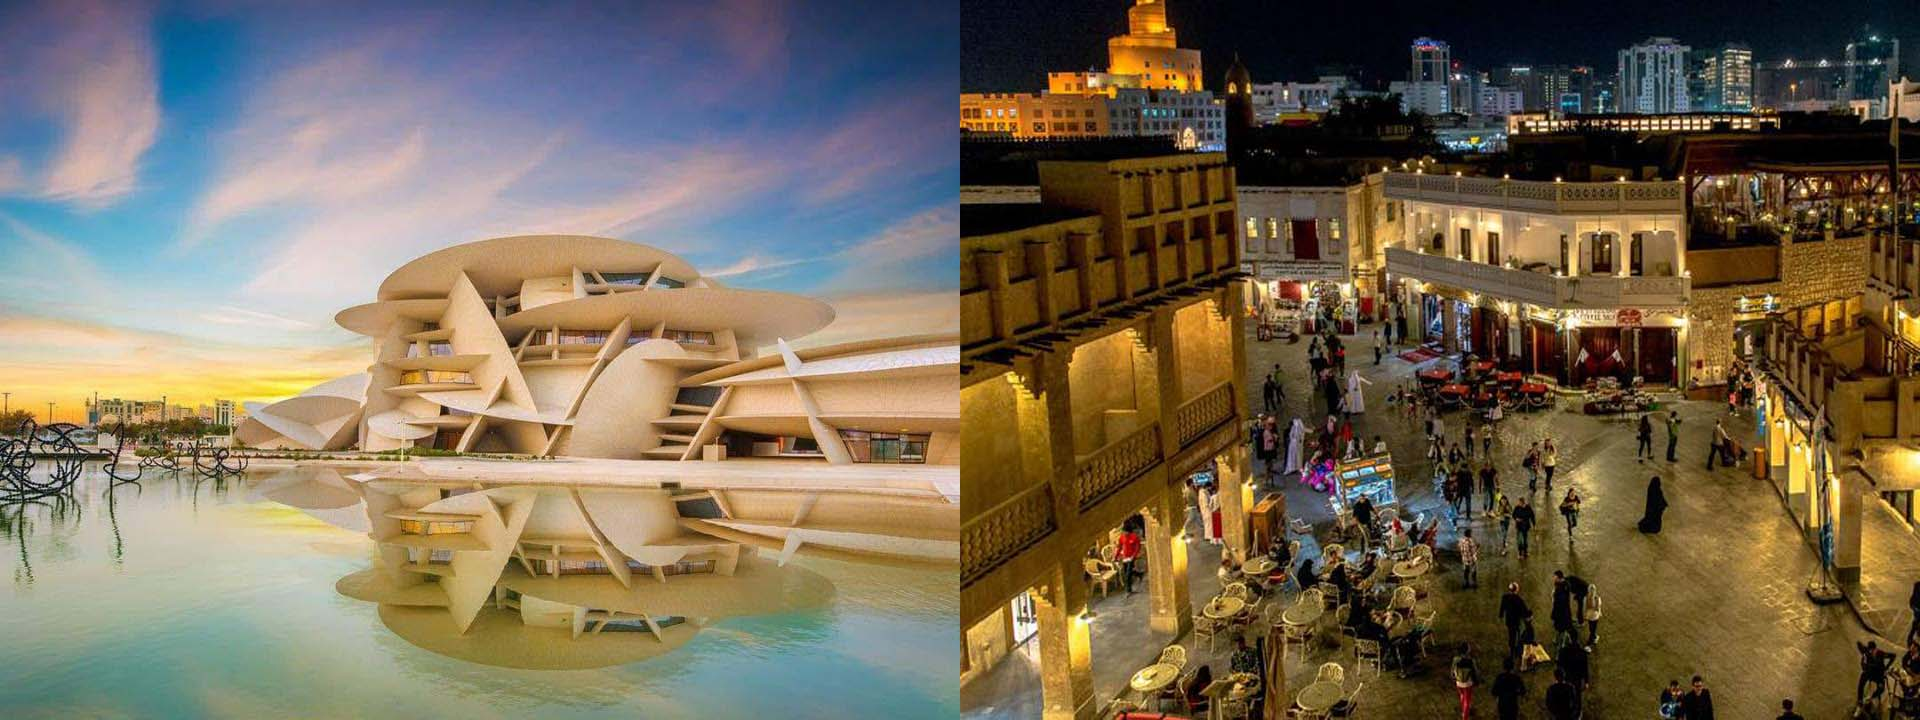 National Museum of Qatar exterior on the left, Souq Waqif on the right